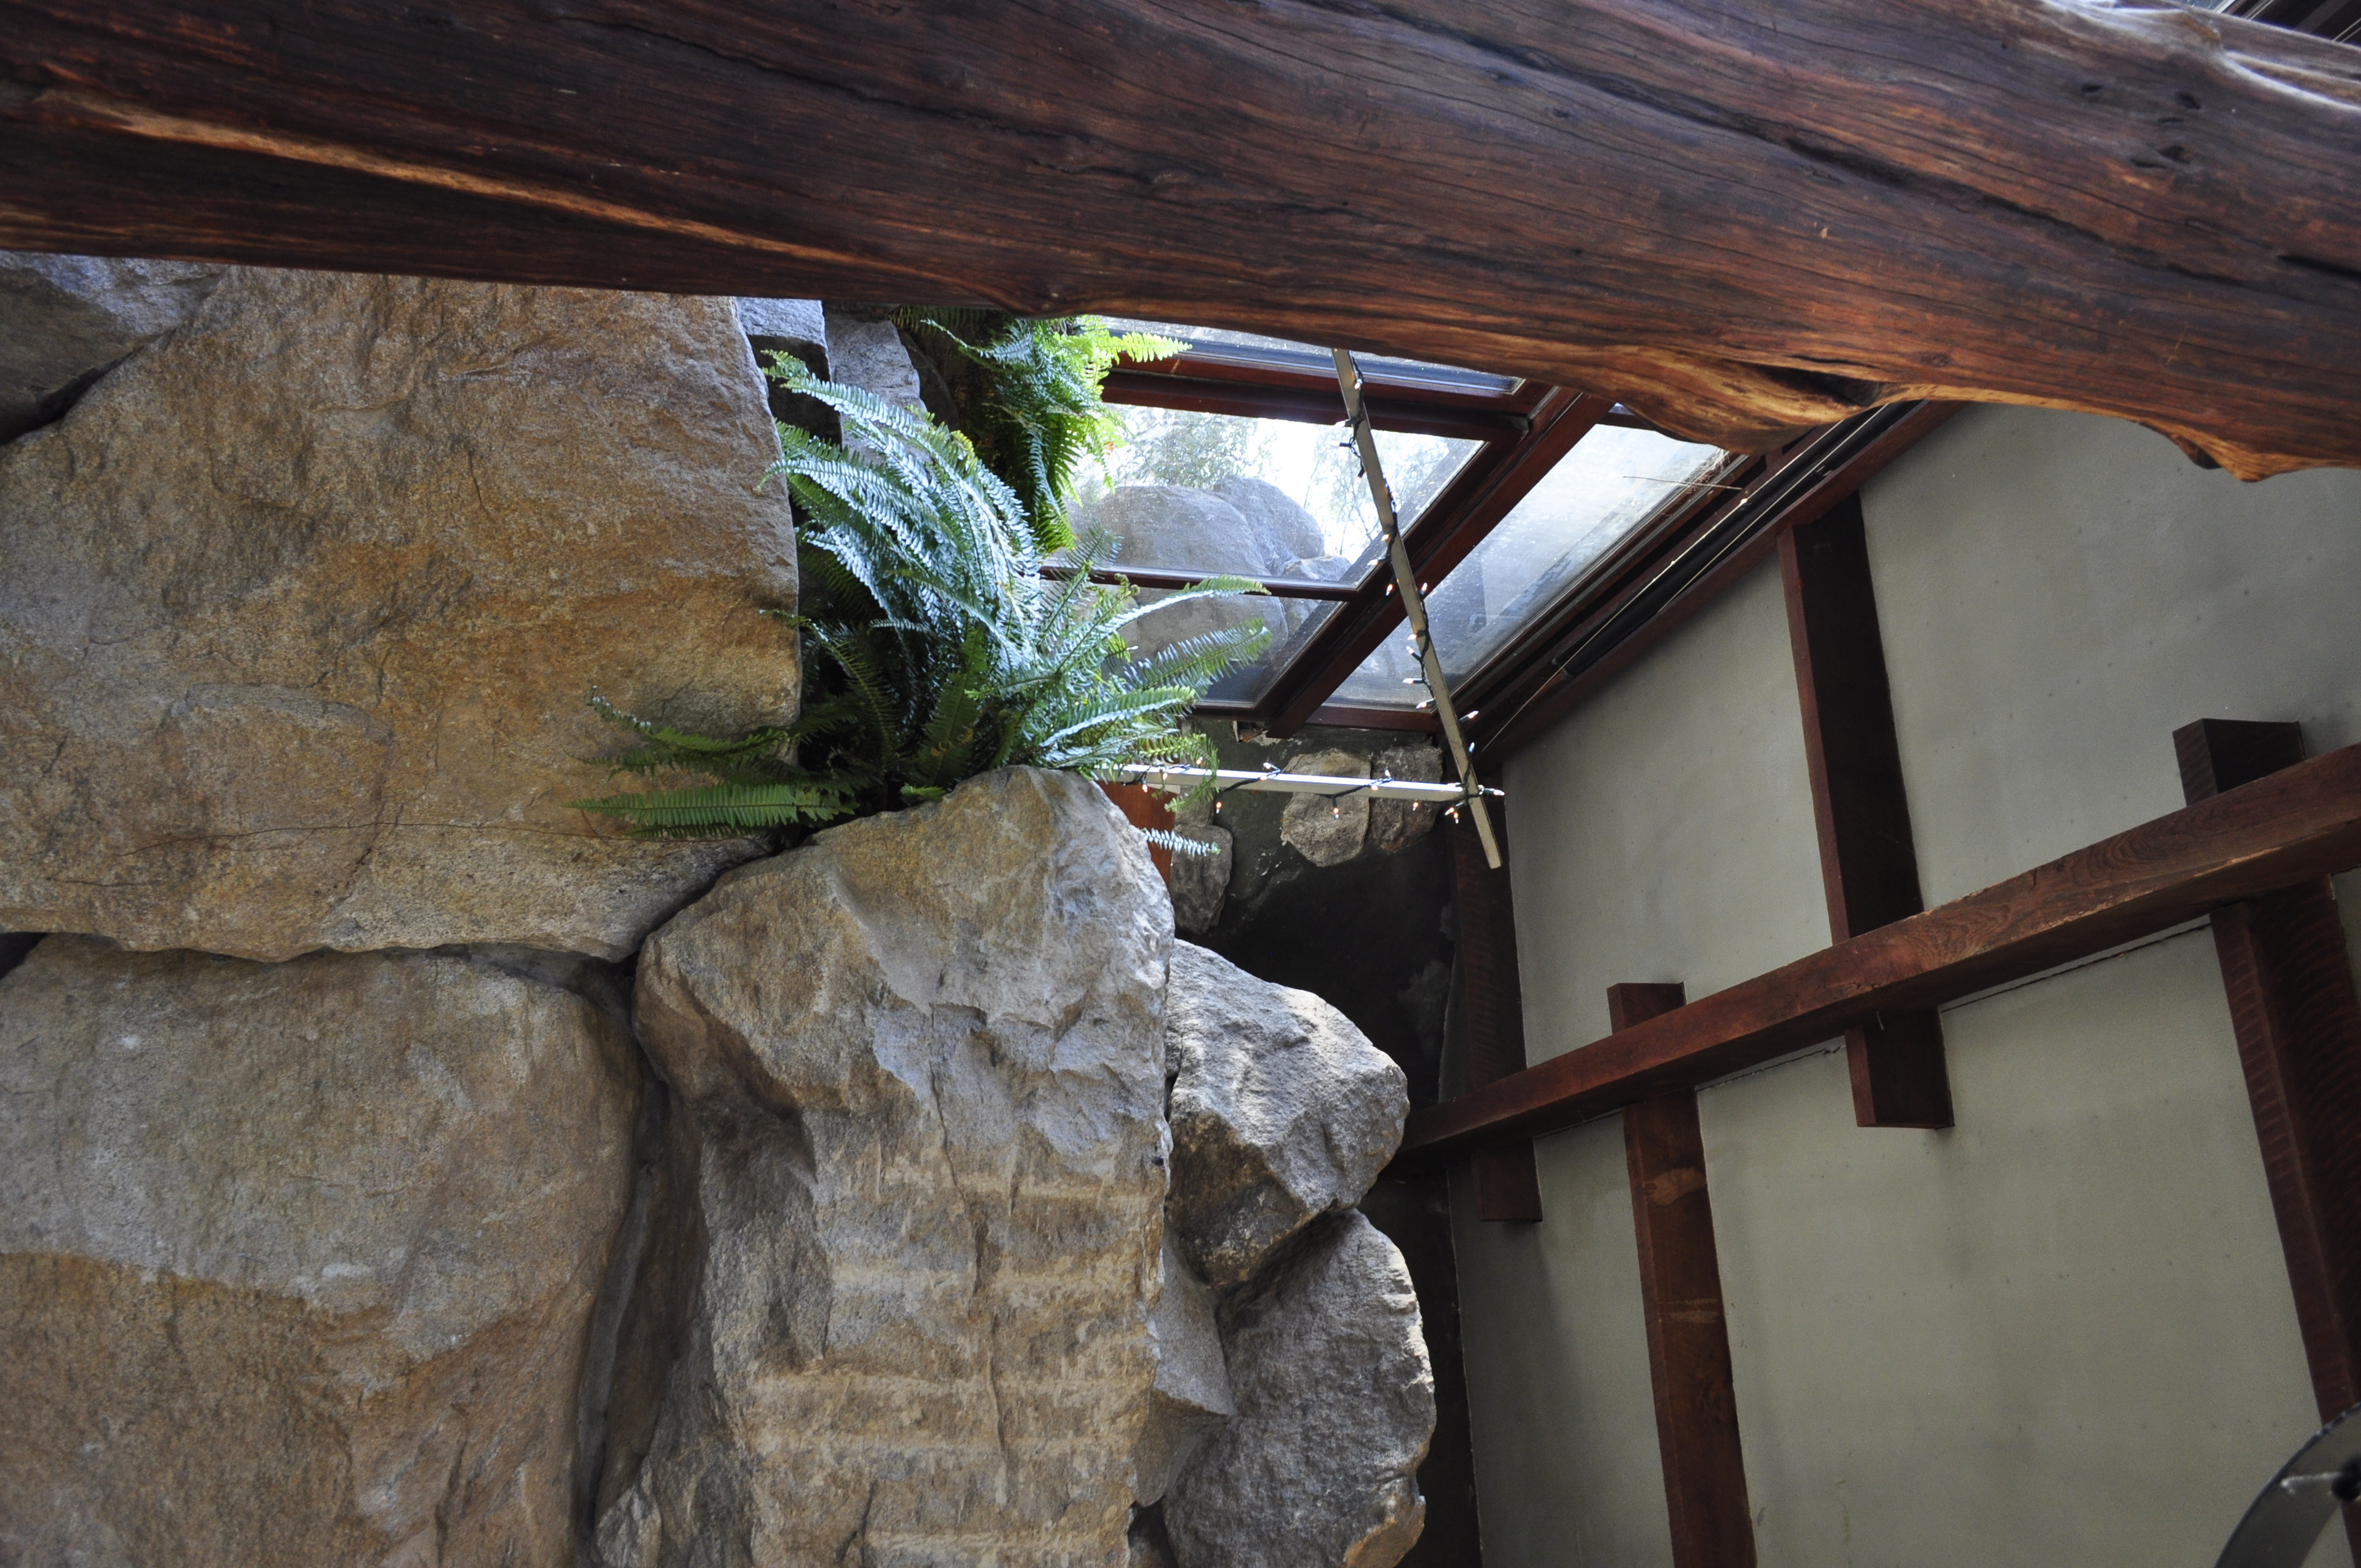 More boulders and wooden planks in the sitting area.